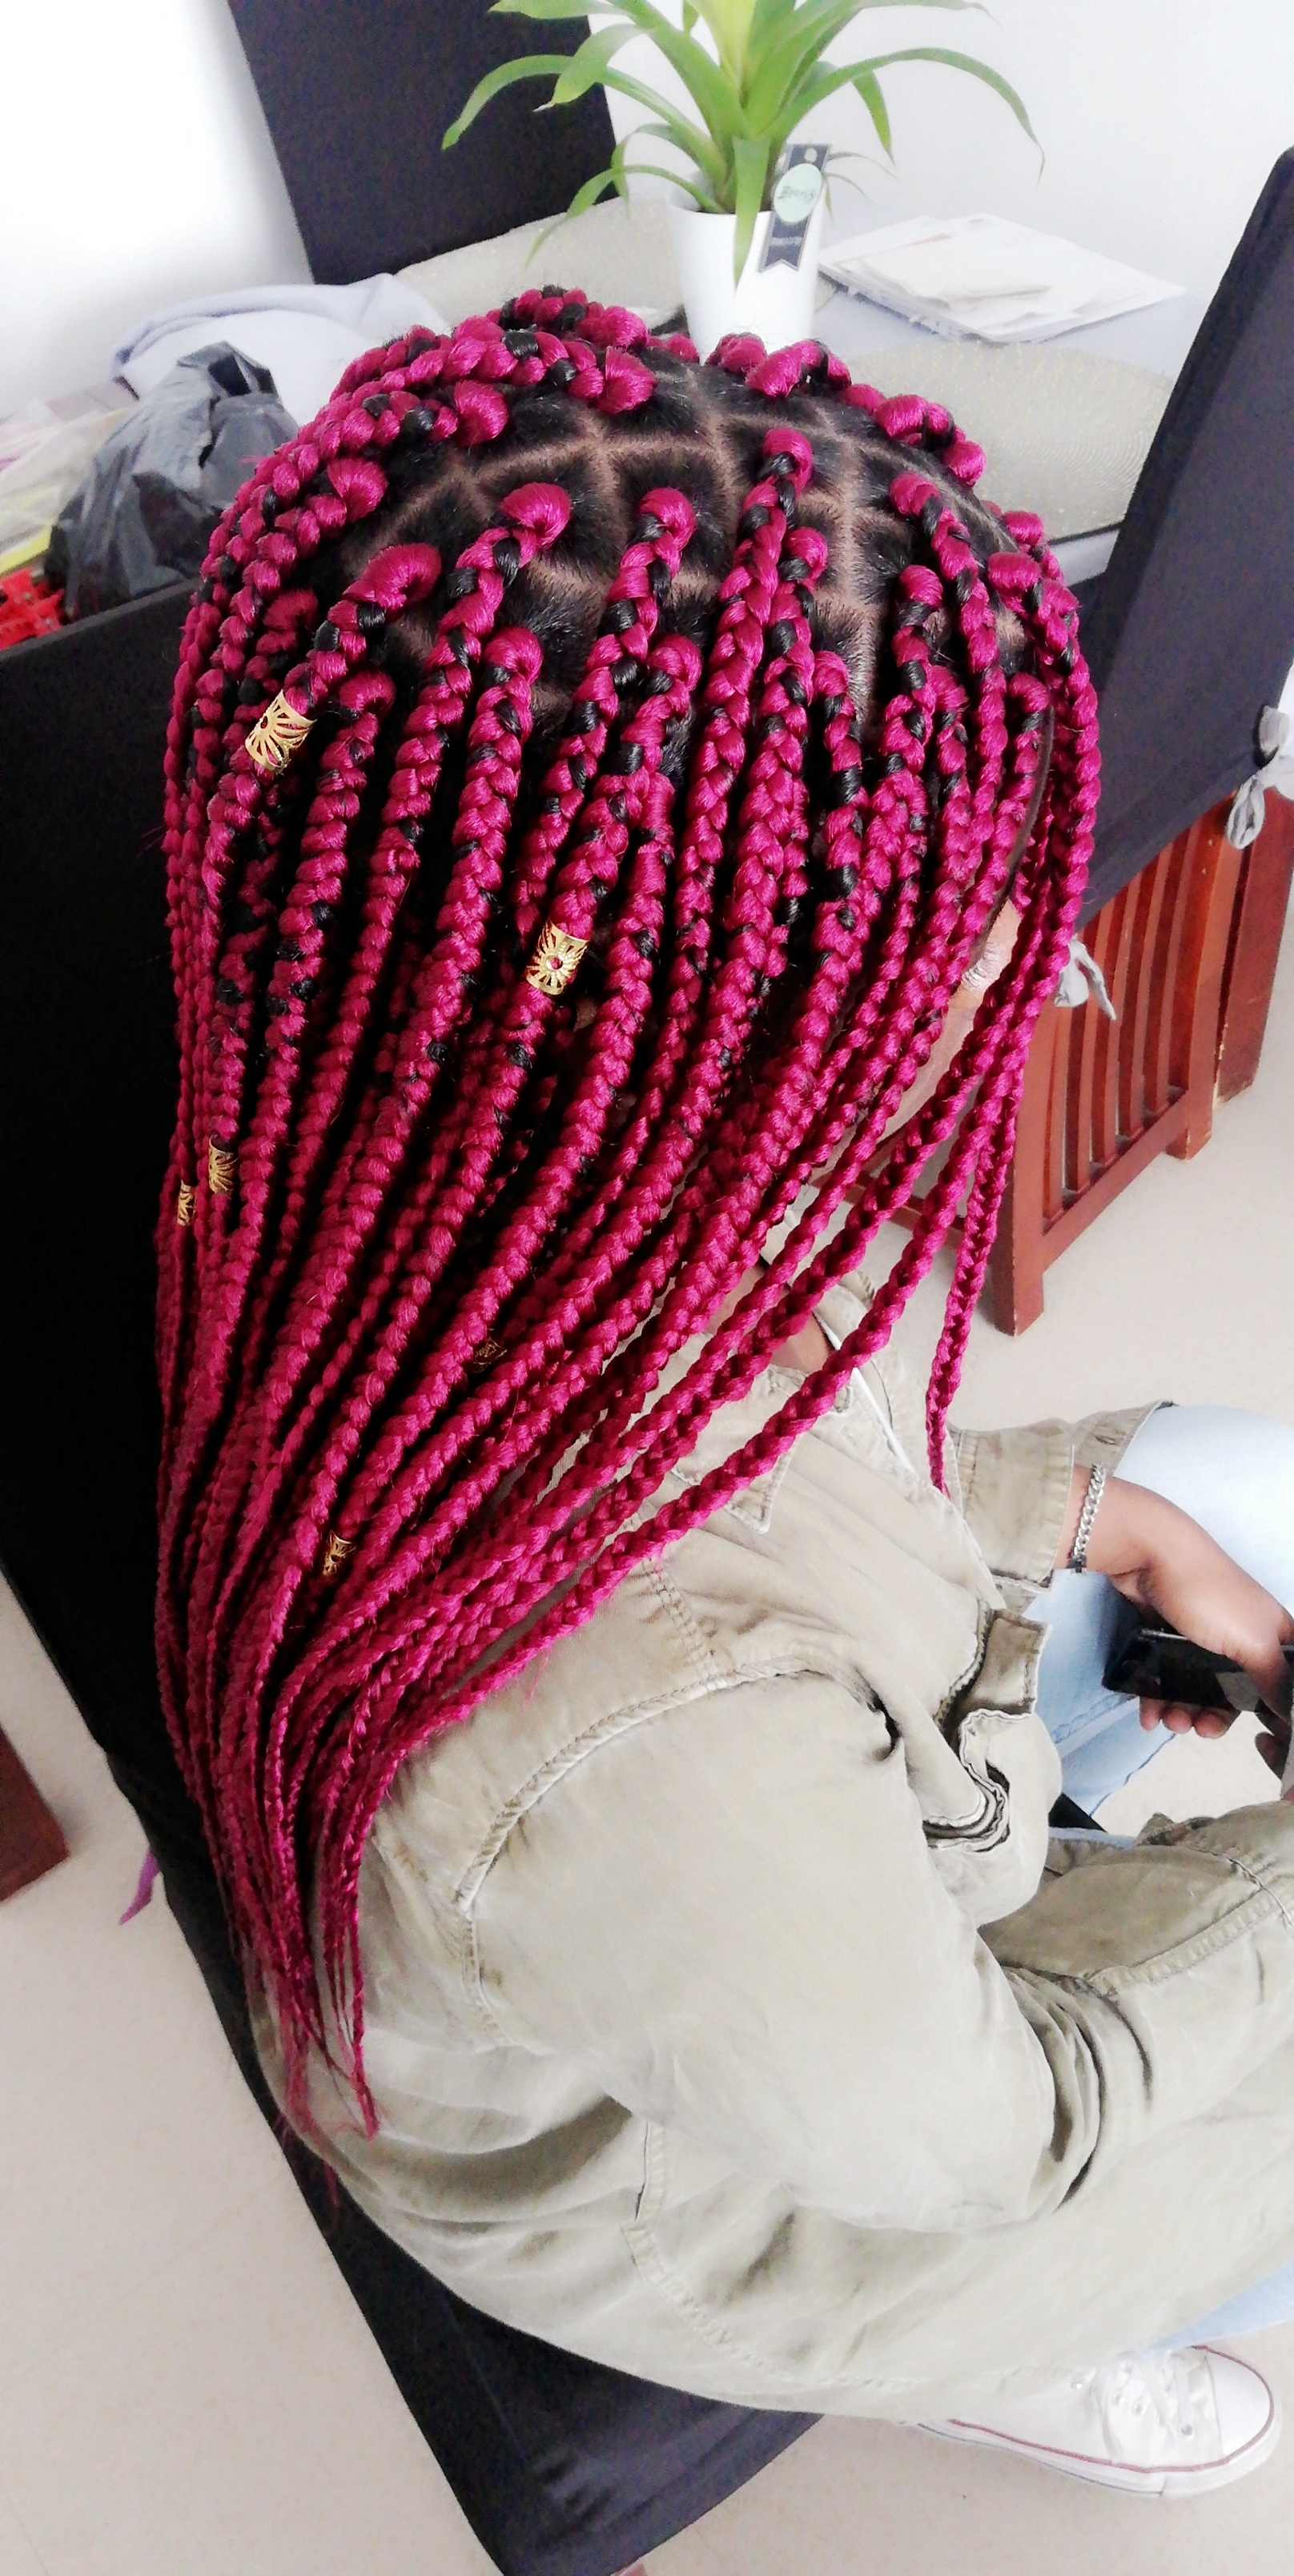 salon de coiffure afro tresse tresses box braids crochet braids vanilles tissages paris 75 77 78 91 92 93 94 95 NFMRDDRM